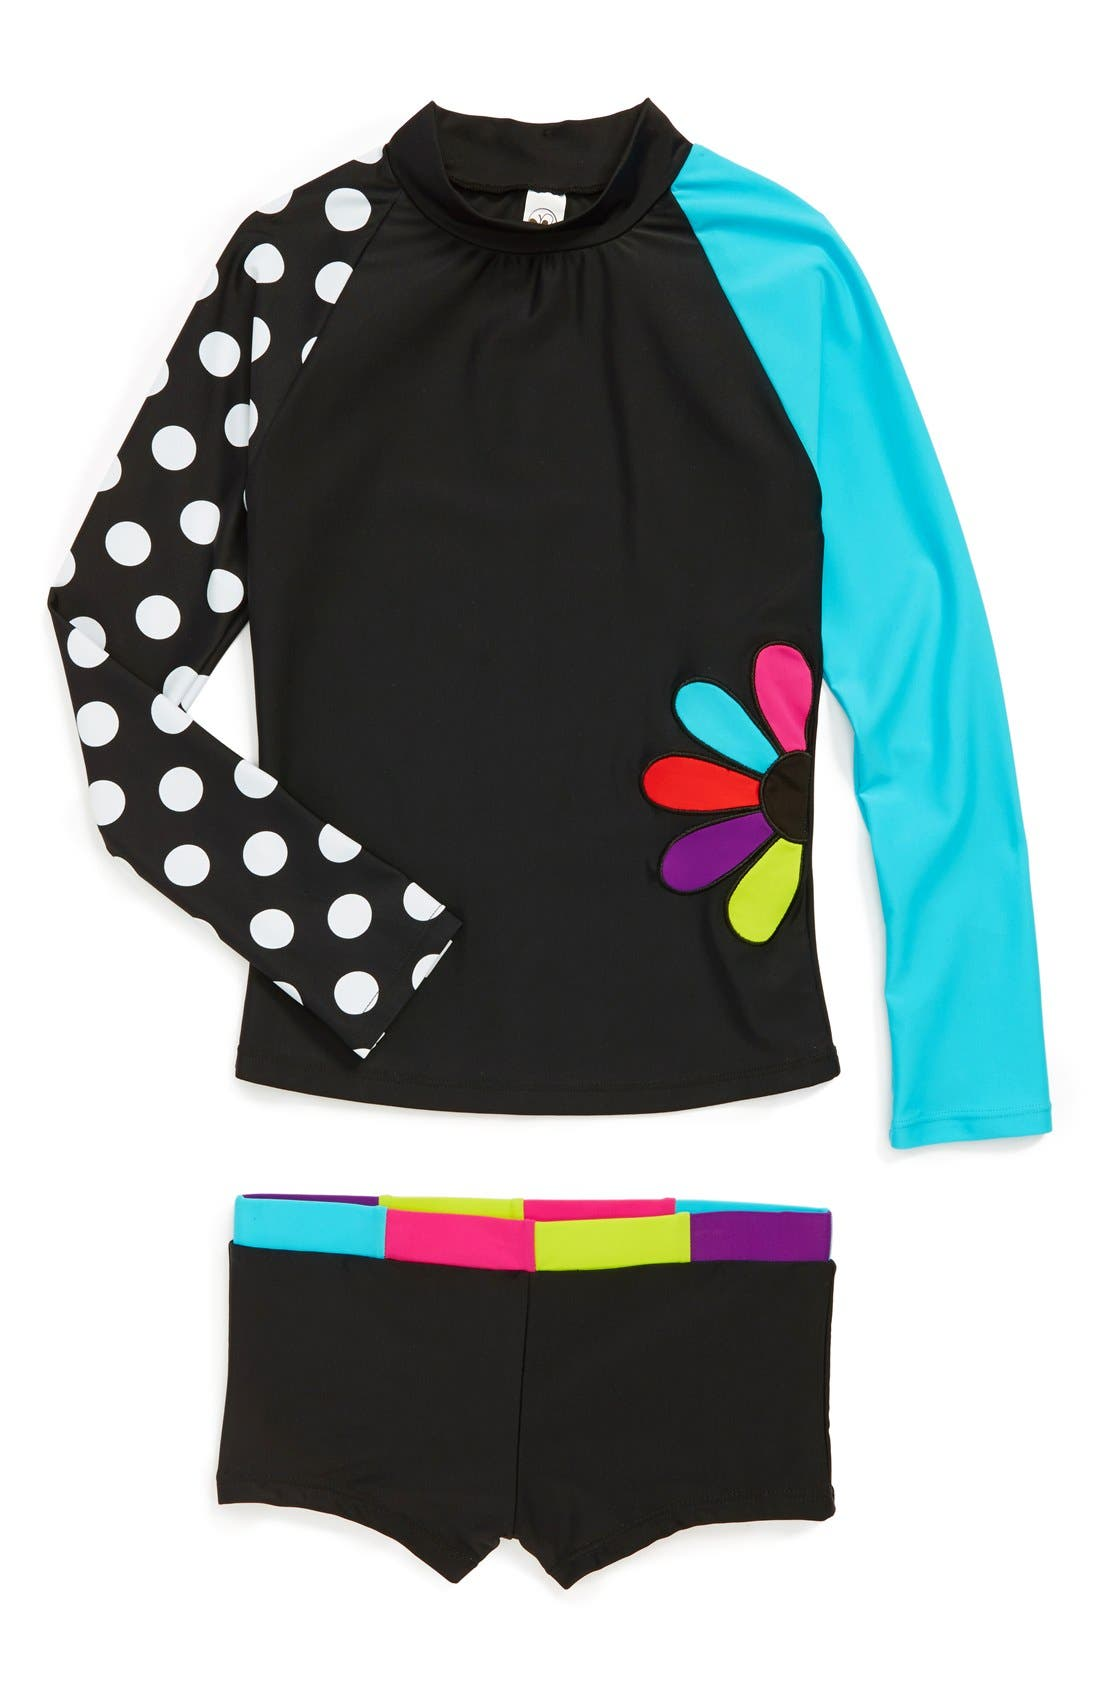 Alternate Image 1 Selected - Limeapple Two-Piece Rashguard Swimsuit (Little Girls & Big Girls)